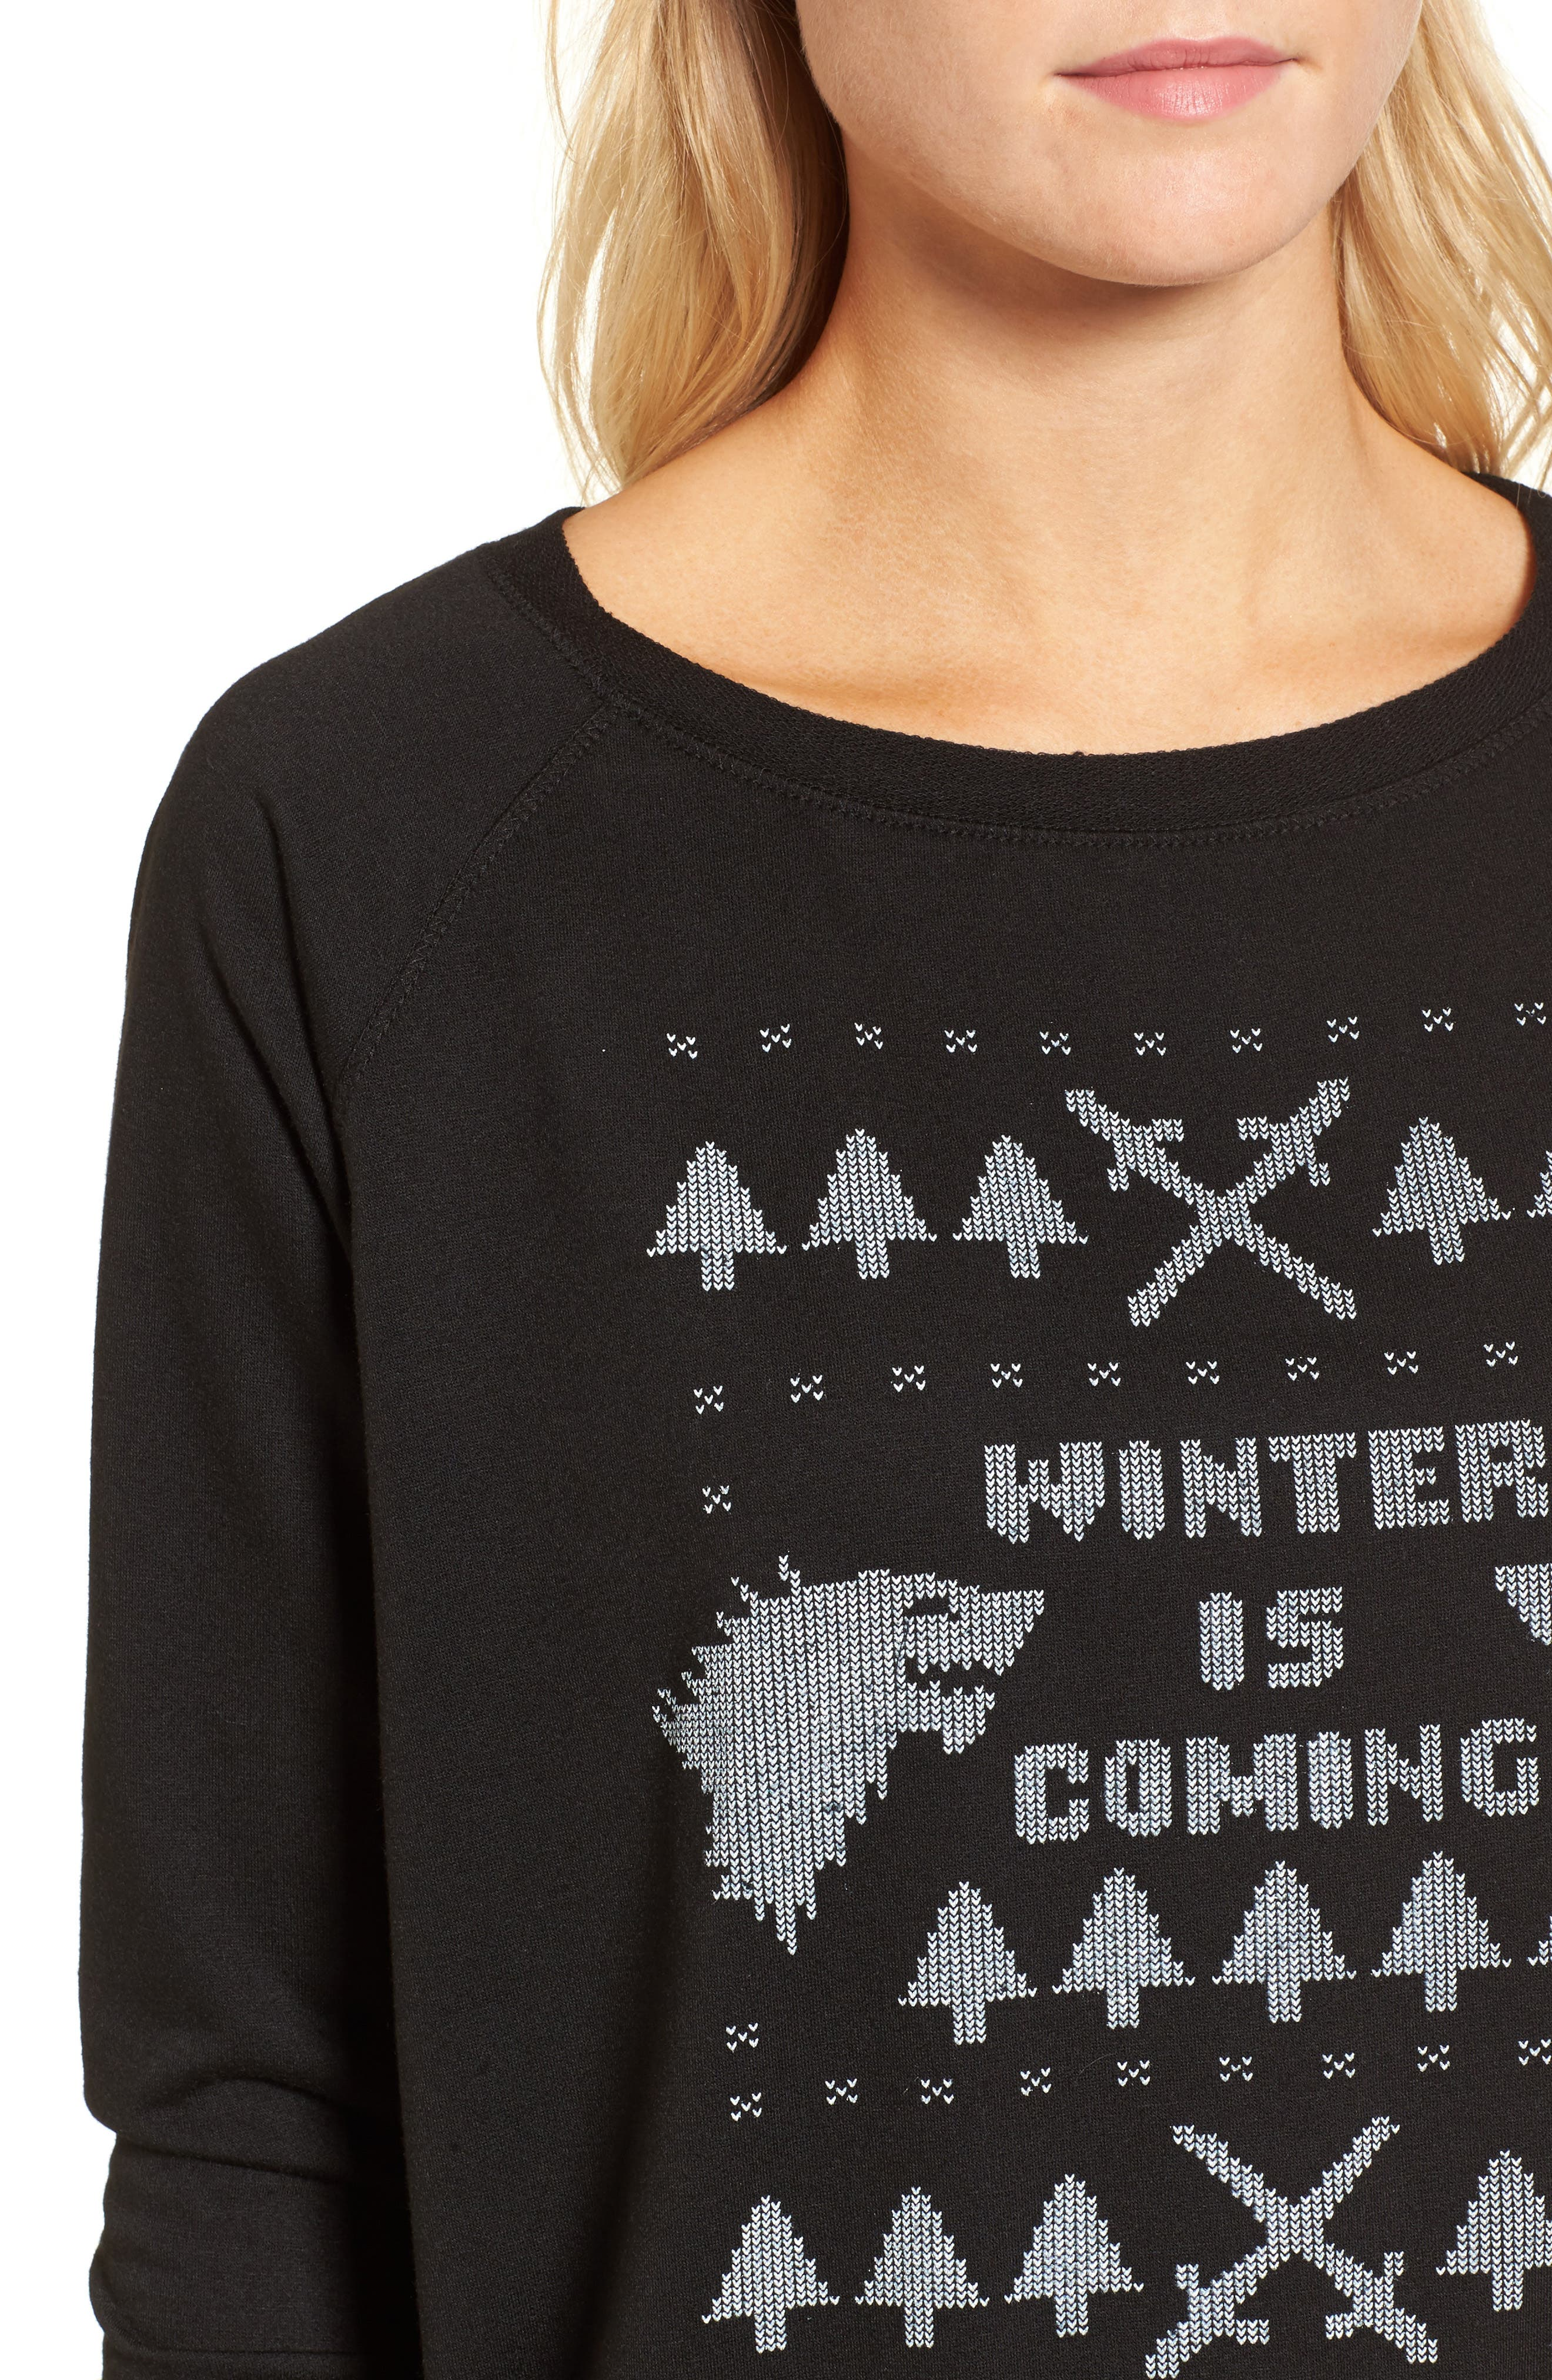 Winter Is Coming Sweatshirt,                             Alternate thumbnail 4, color,                             001